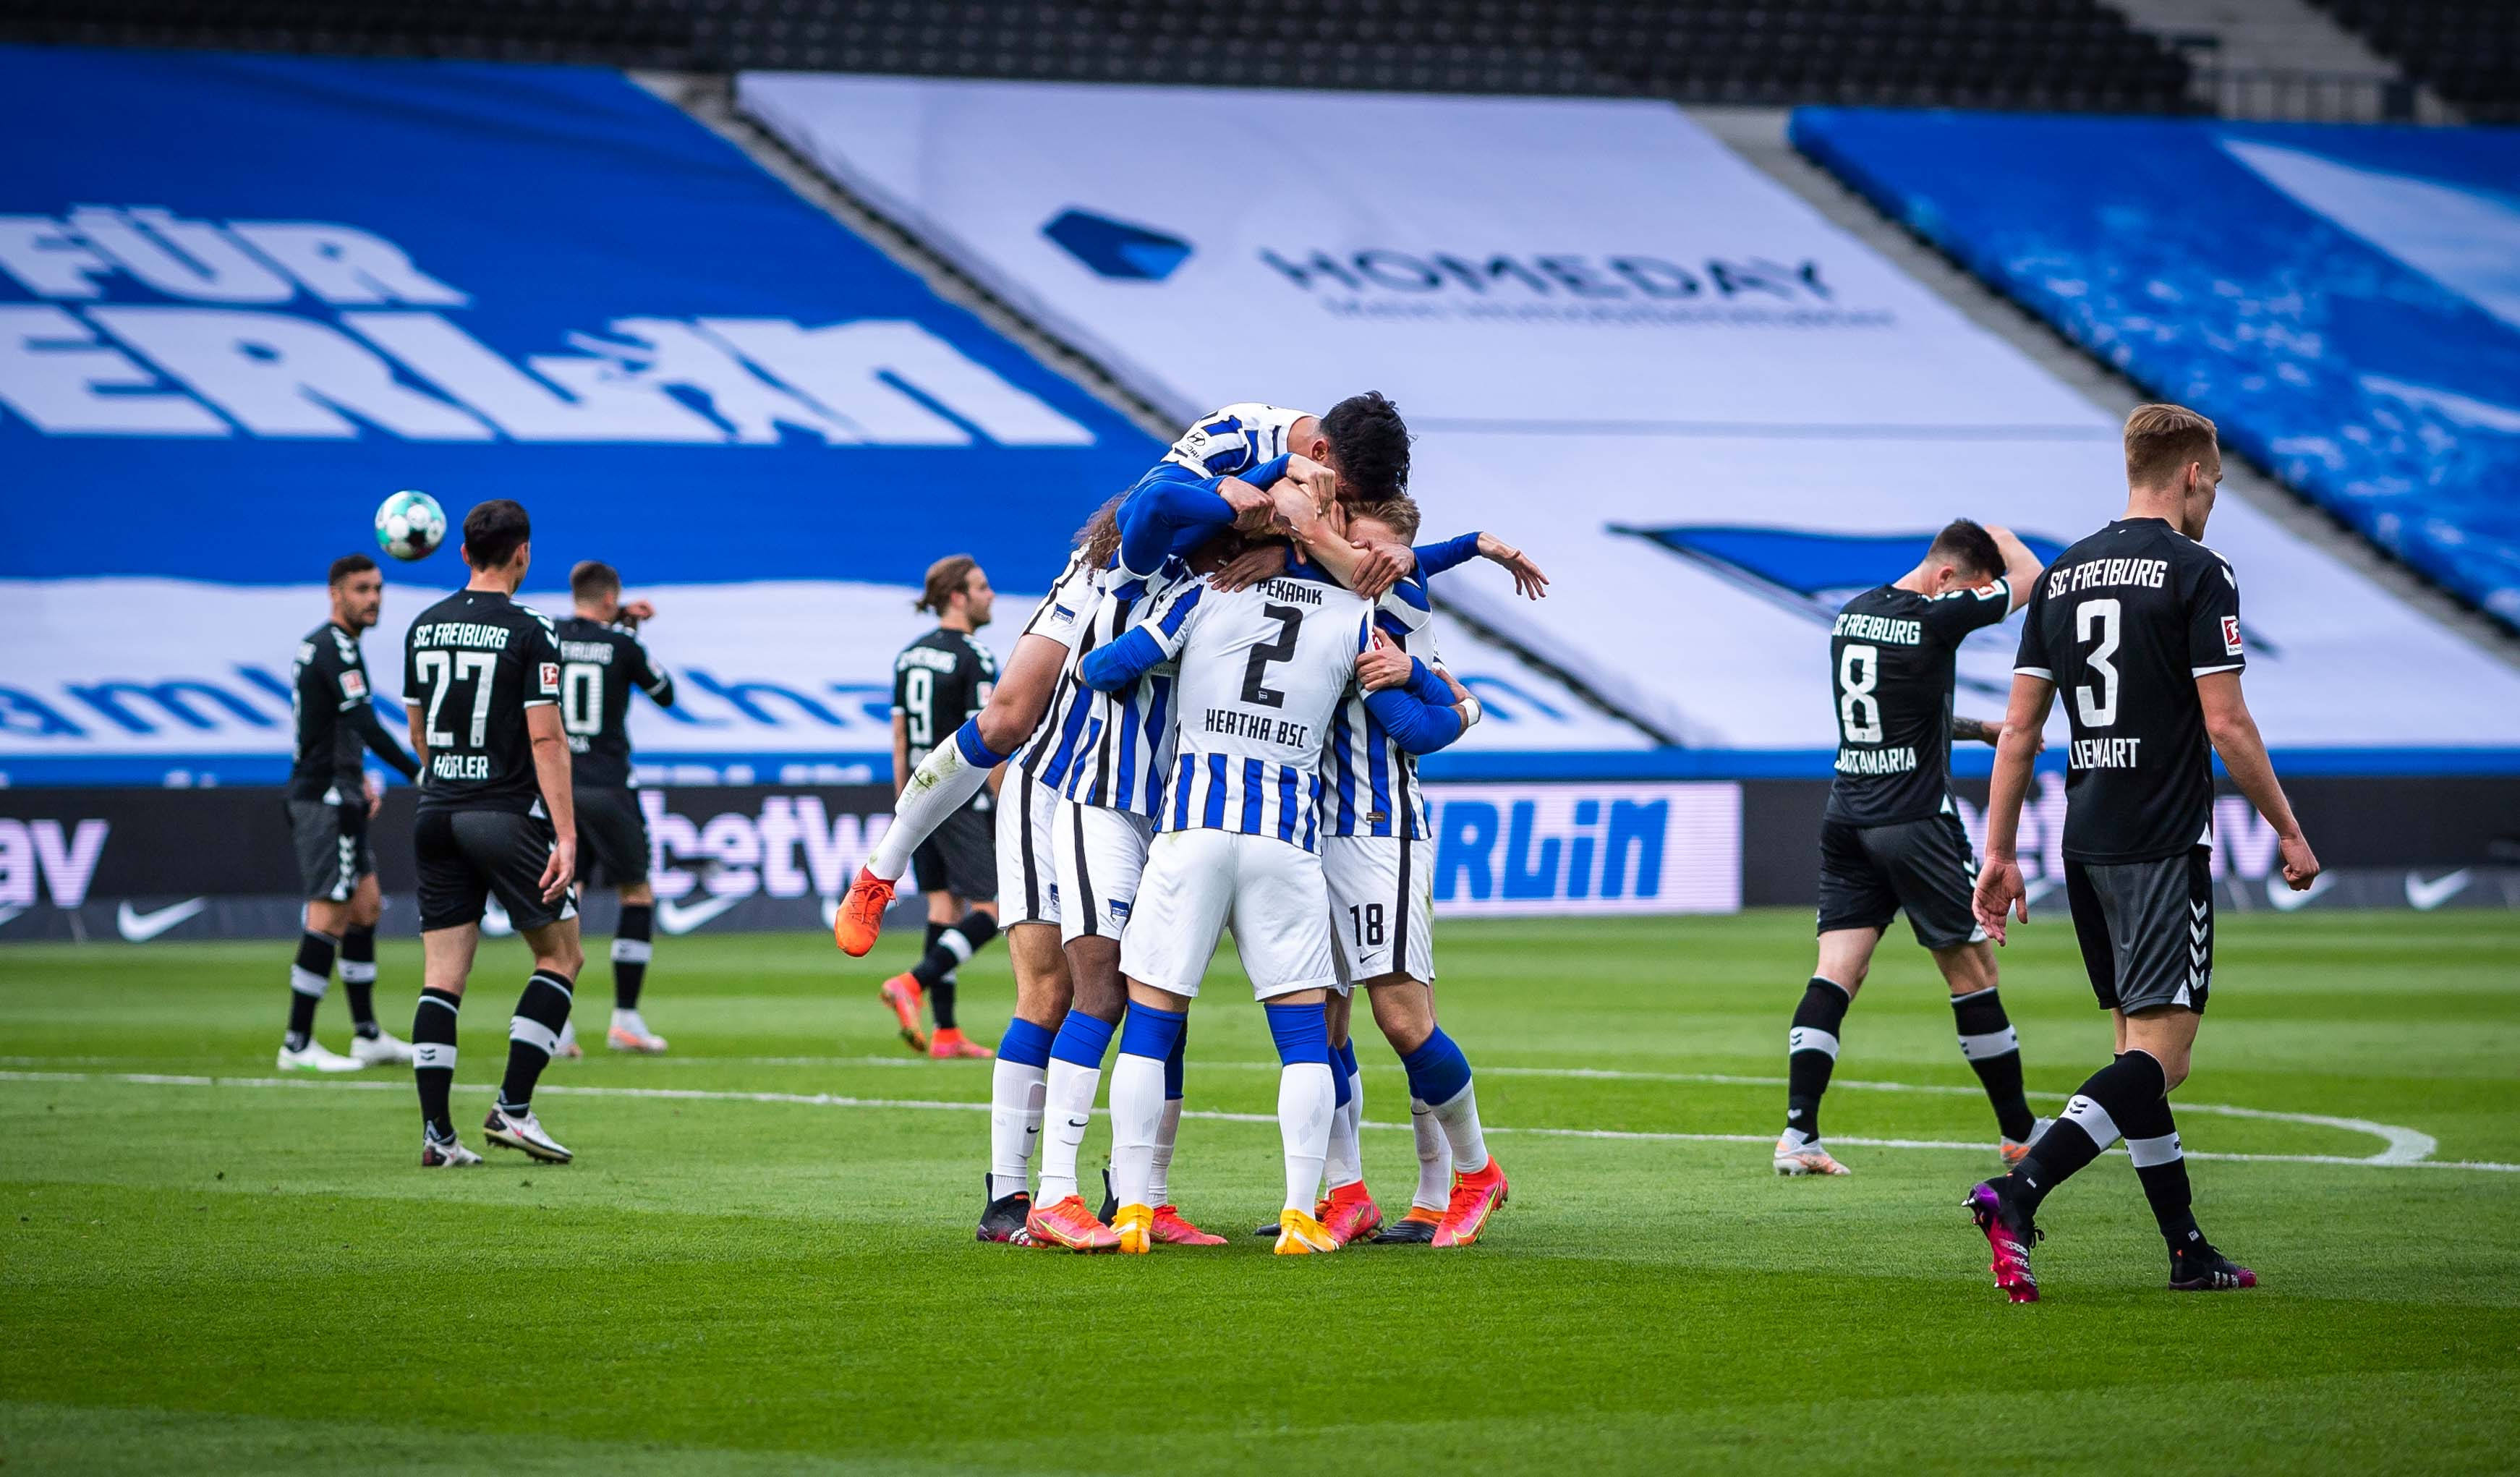 The players celebrate Hertha's second goal against SCF.